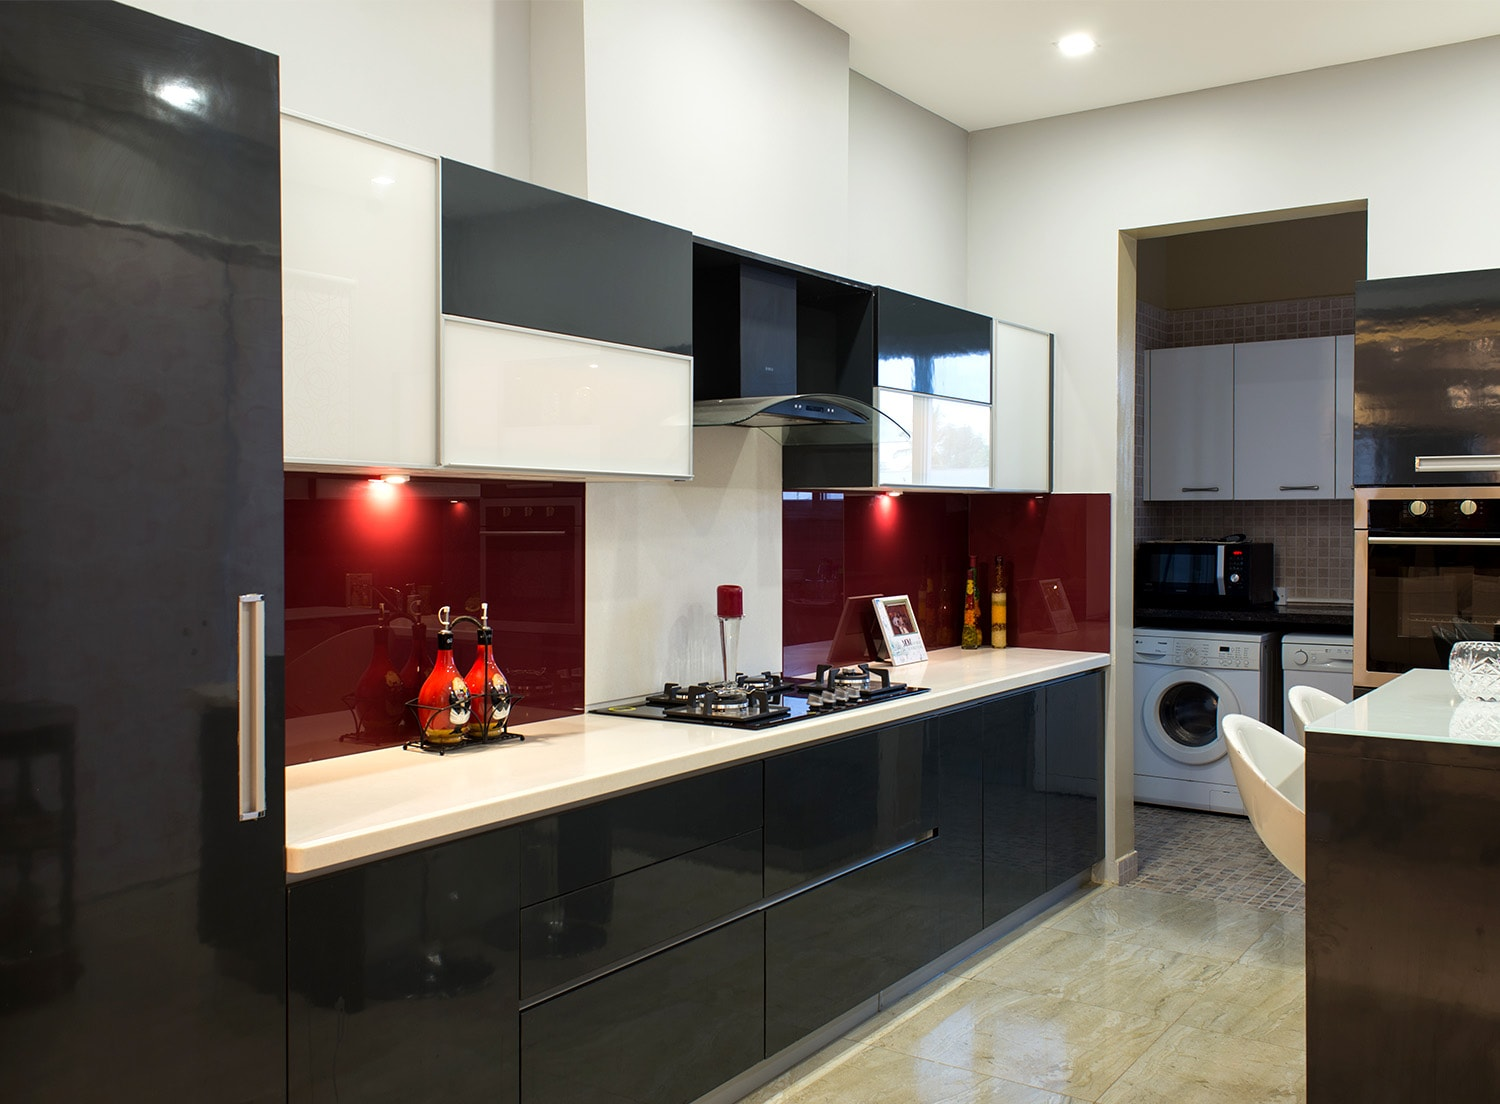 Home interiors by homelane modular kitchens wardrobes for Sample modular kitchen designs